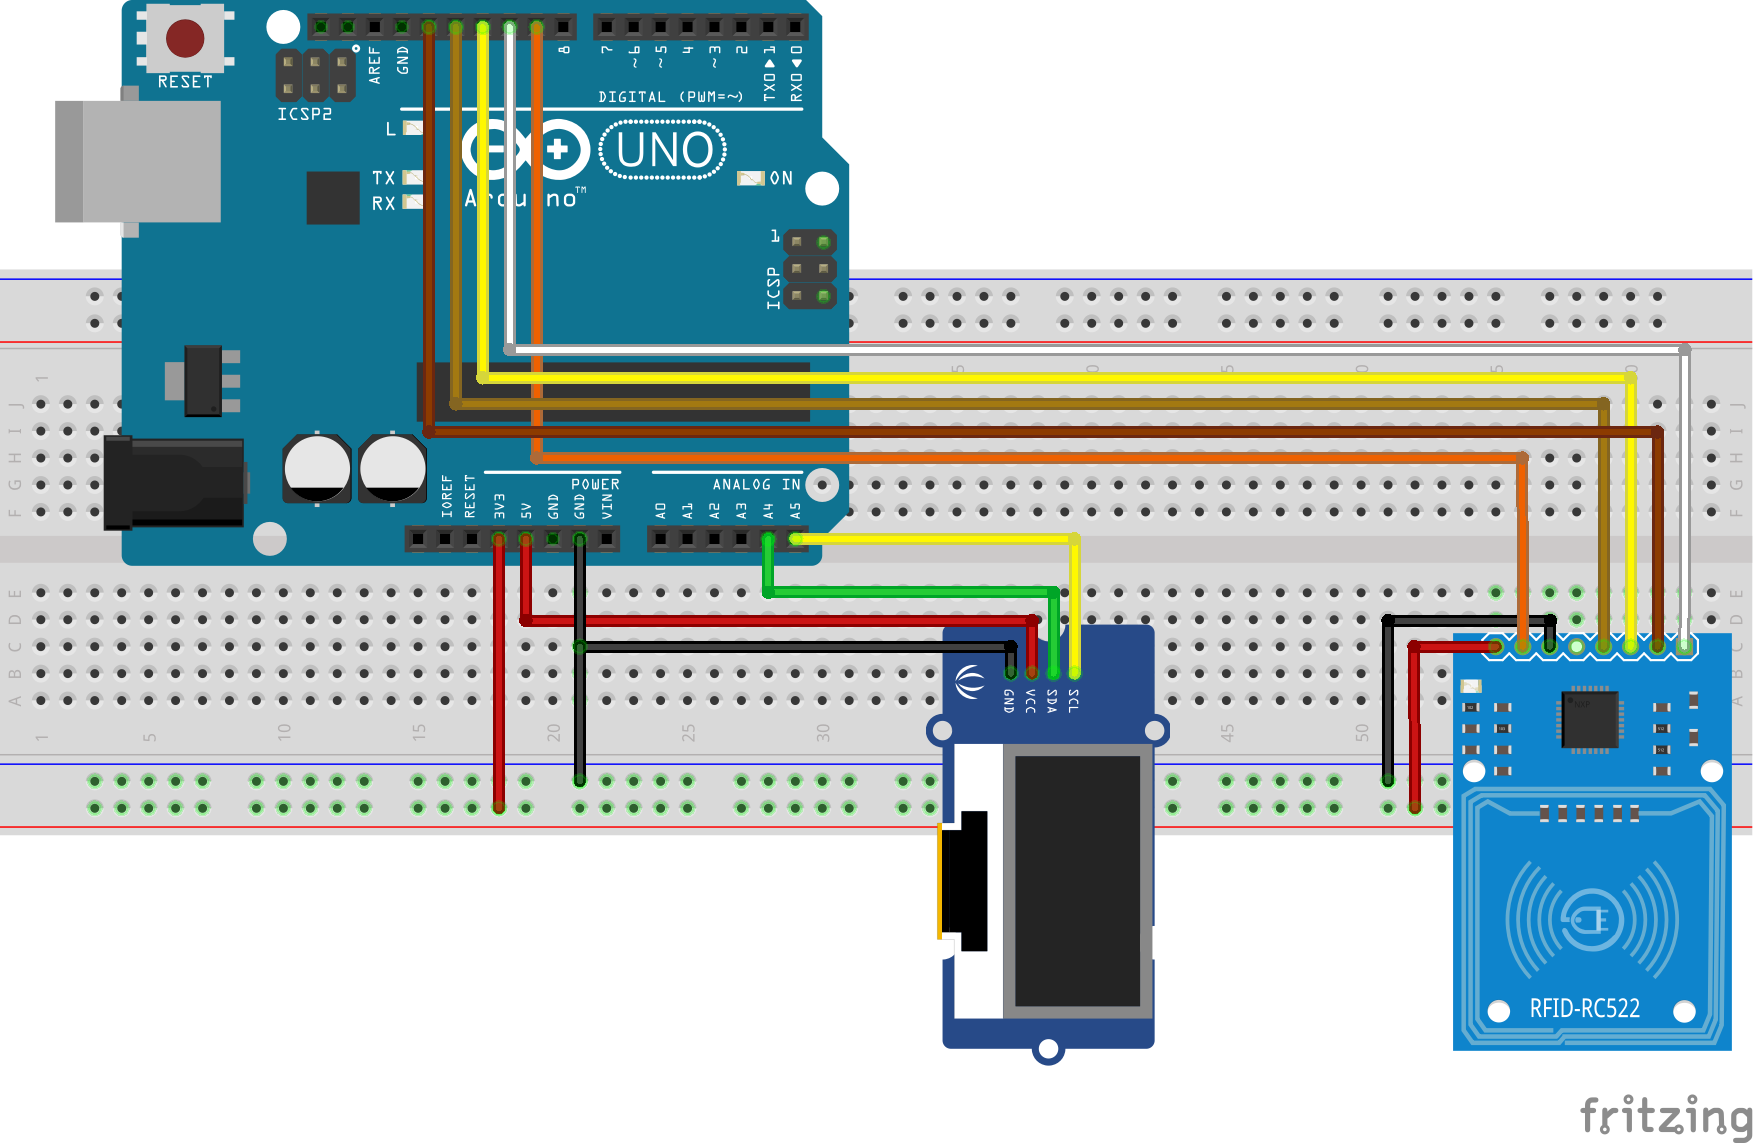 Use RC522 RFID module with Arduino and an OLED display